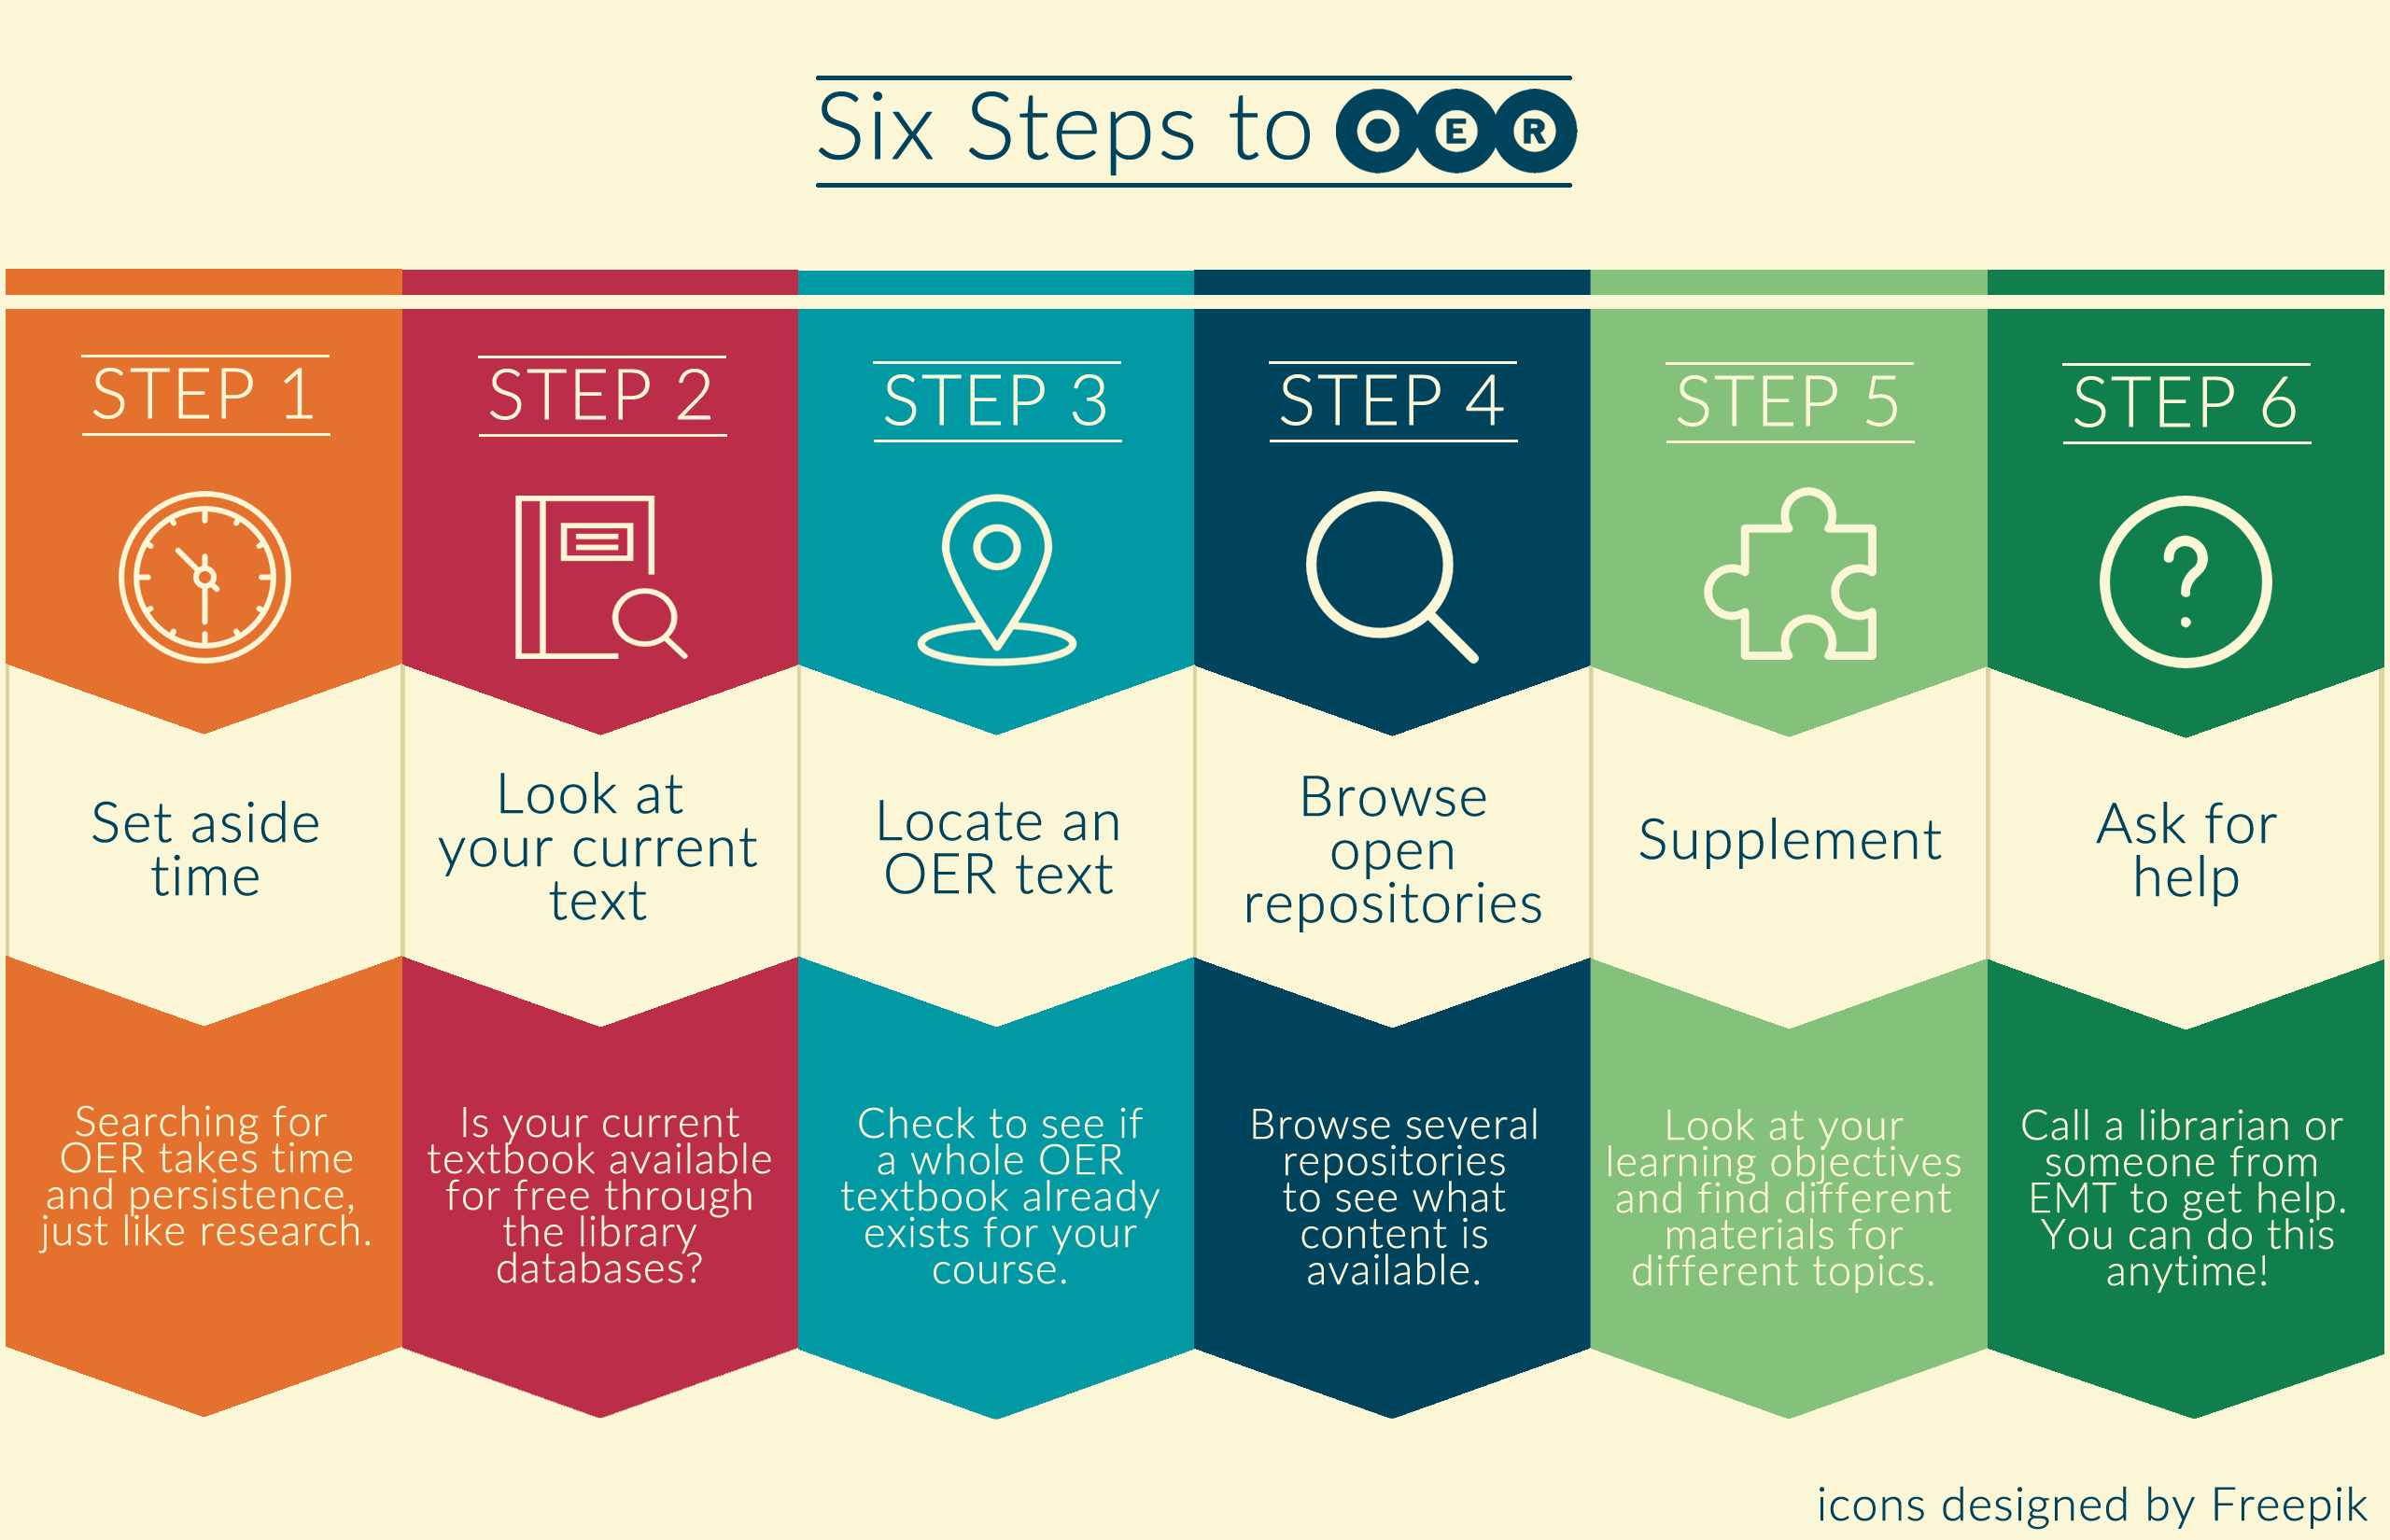 Six steps to OER image. Text below image